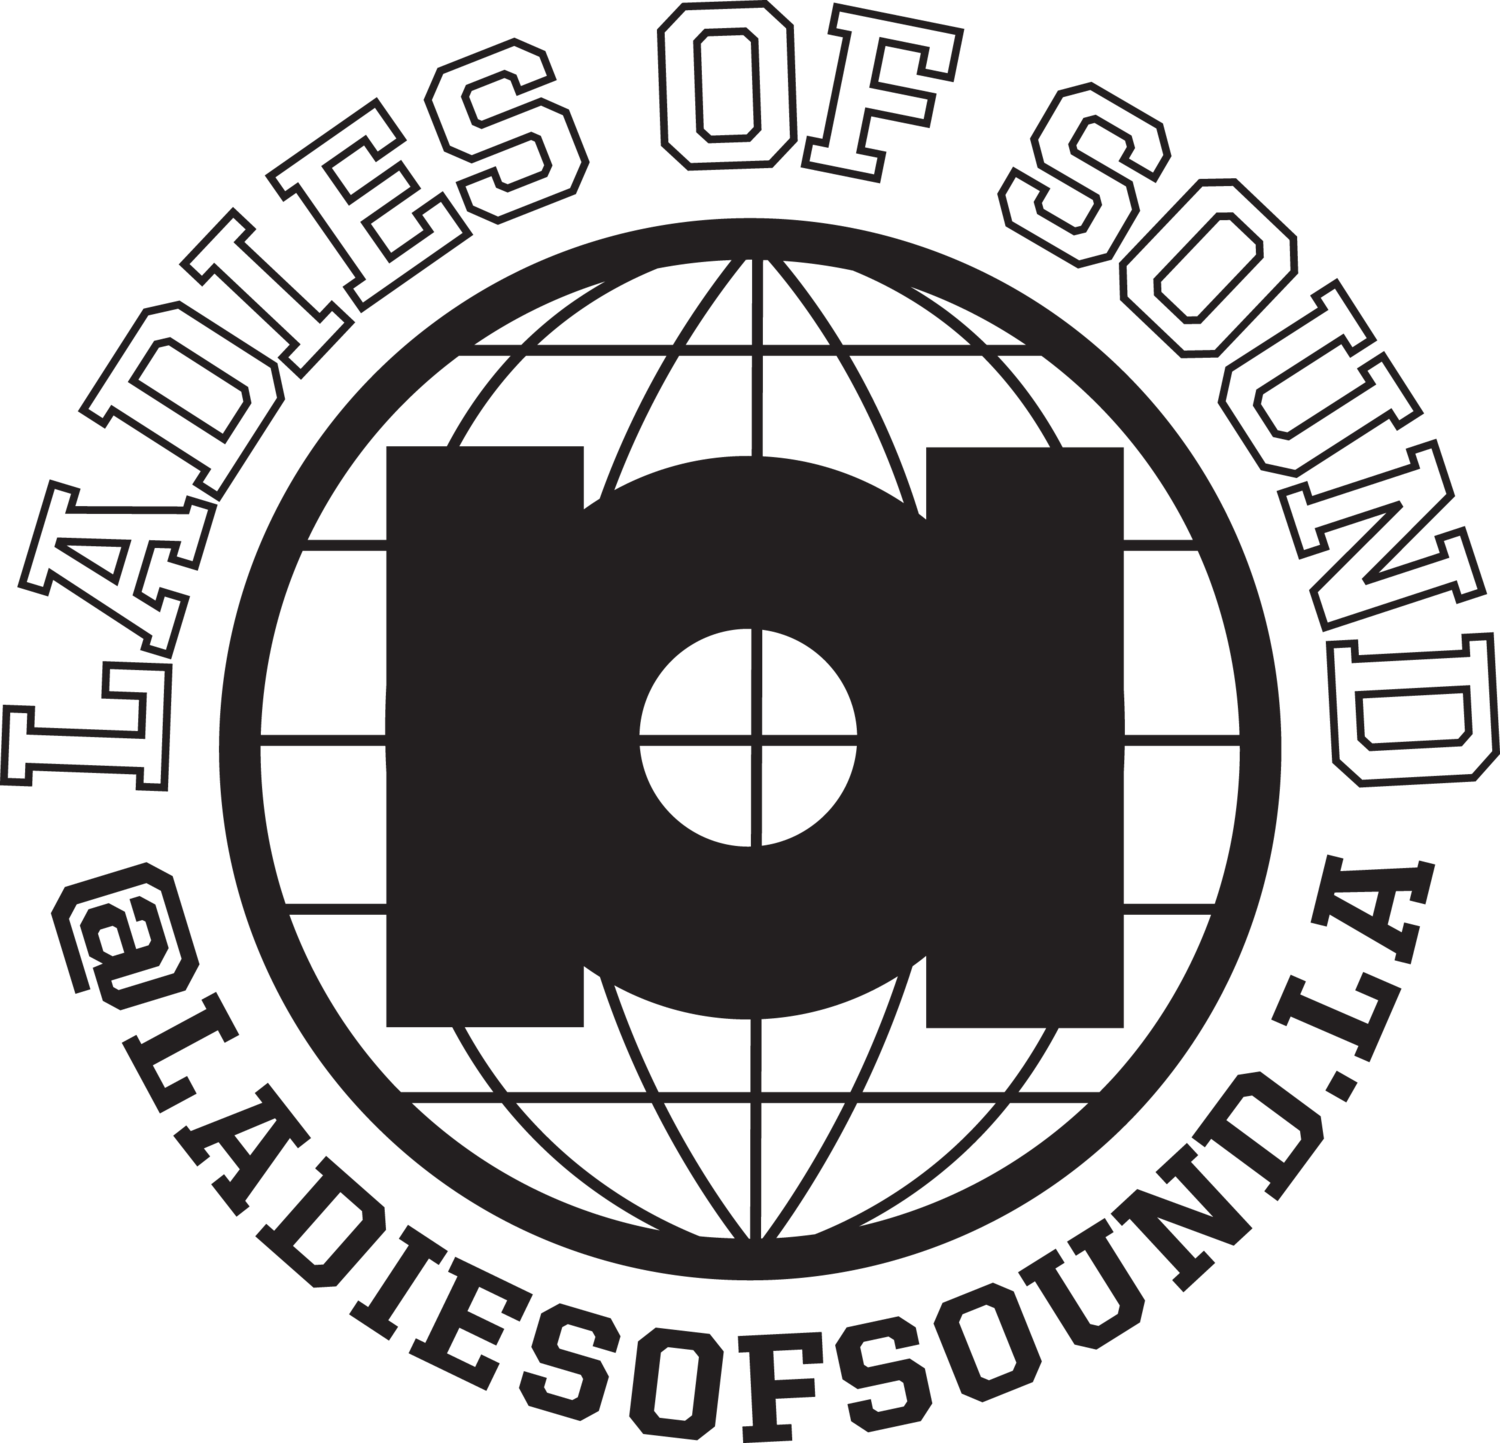 Ladies of Sound